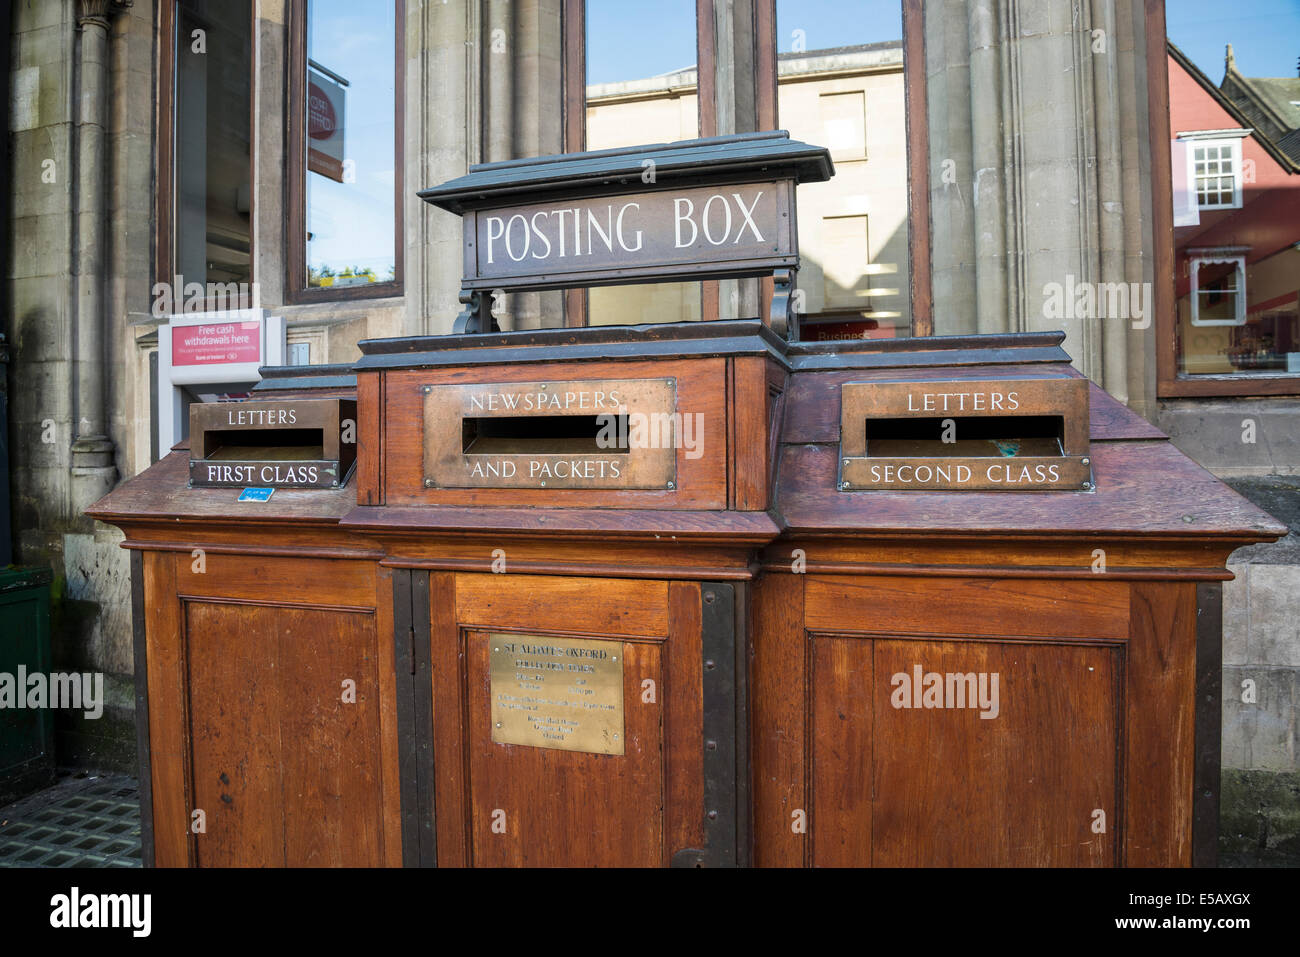 Old fashioned wooden post box, St Aldate's Street, Oxford, England, UK Stock Photo